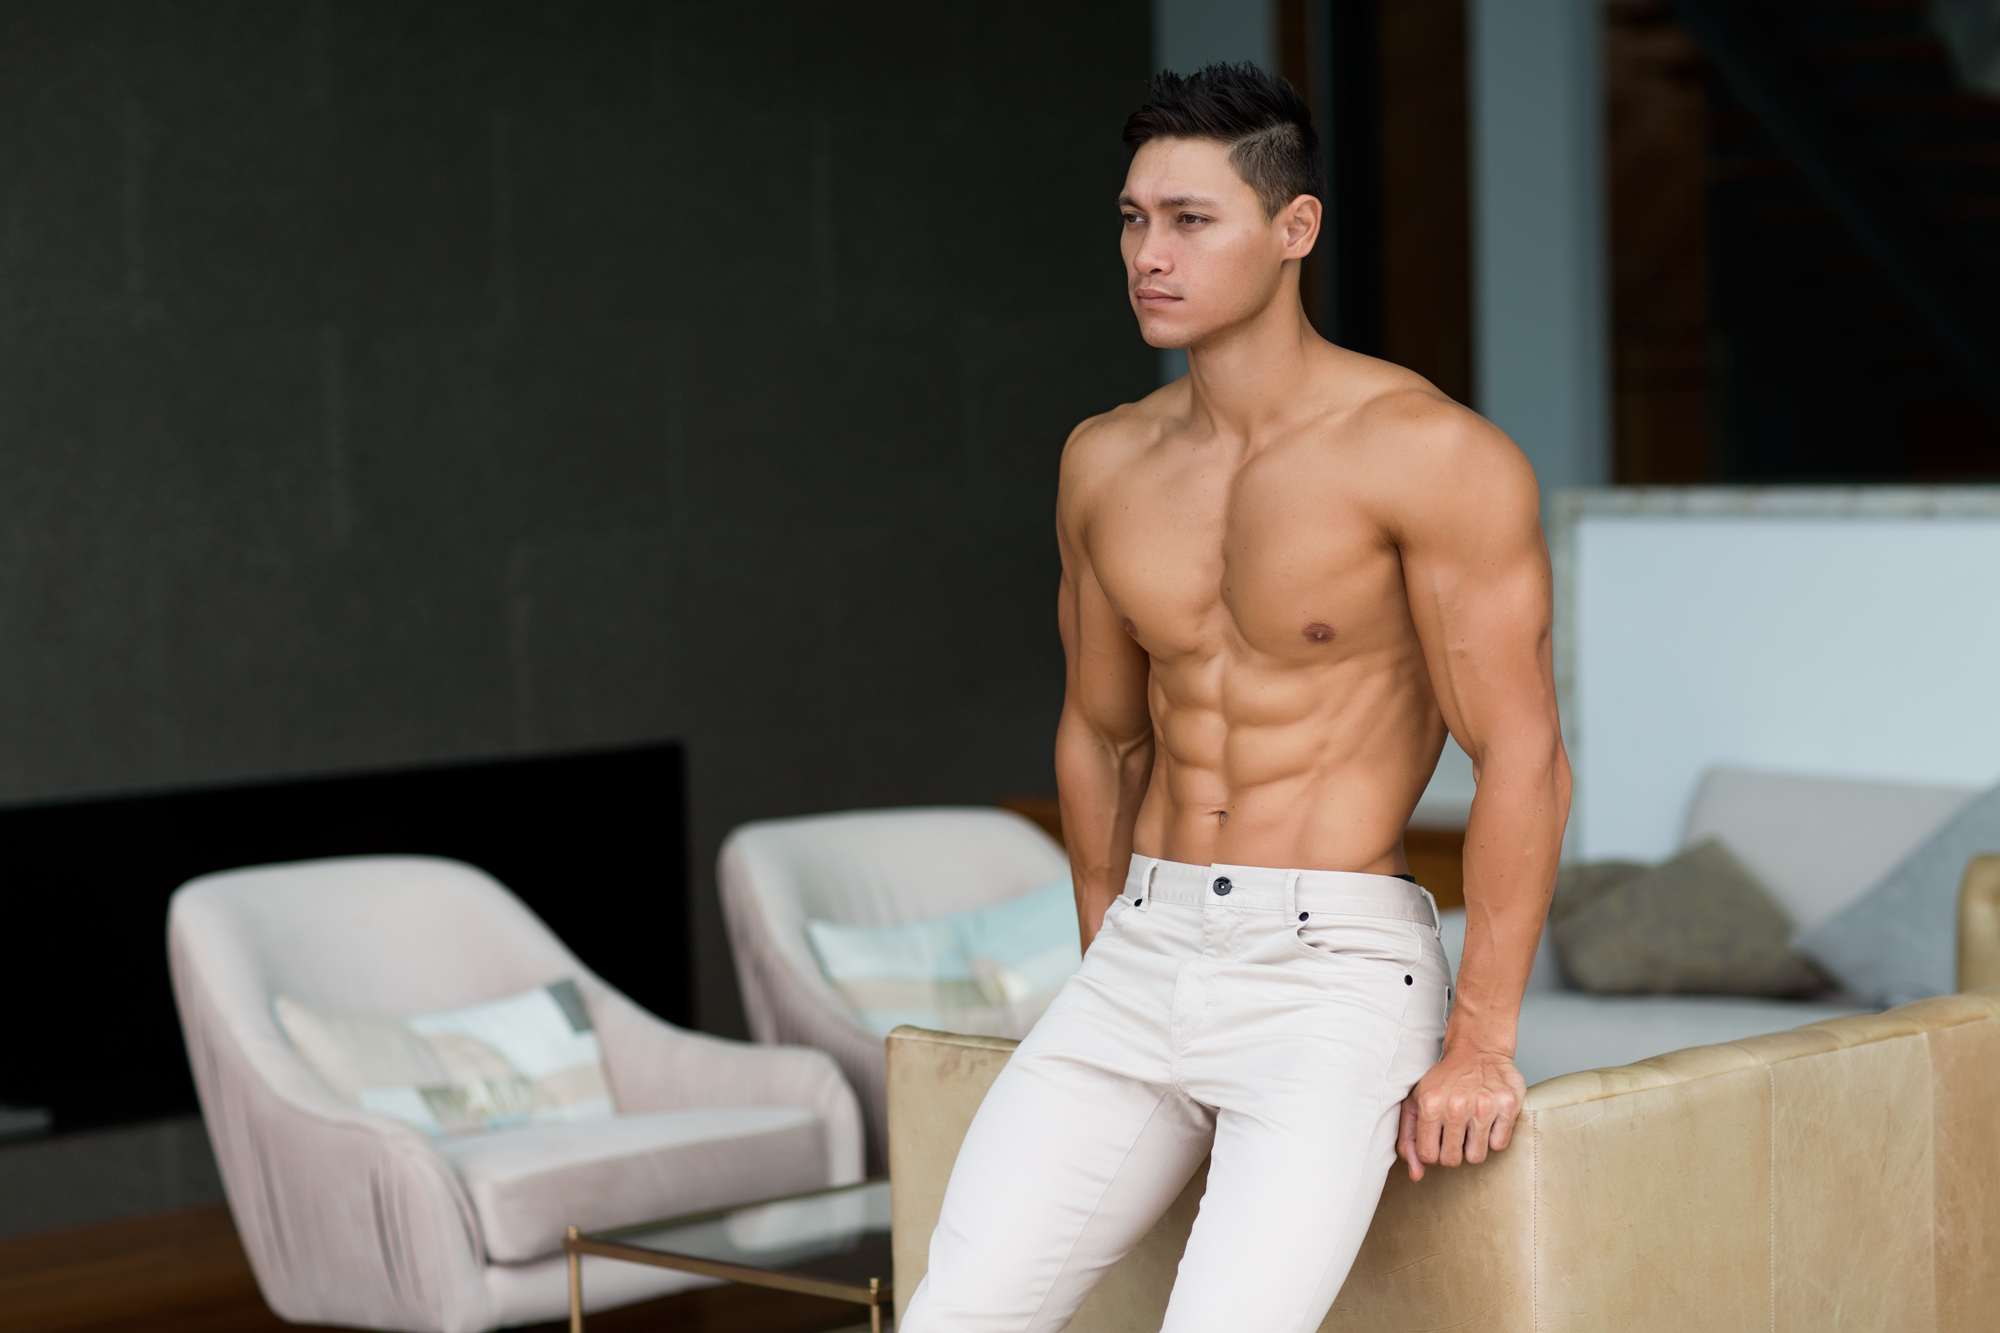 Andrew Mc seated on armchair wearing cream slacks, topless flexing his abdominals